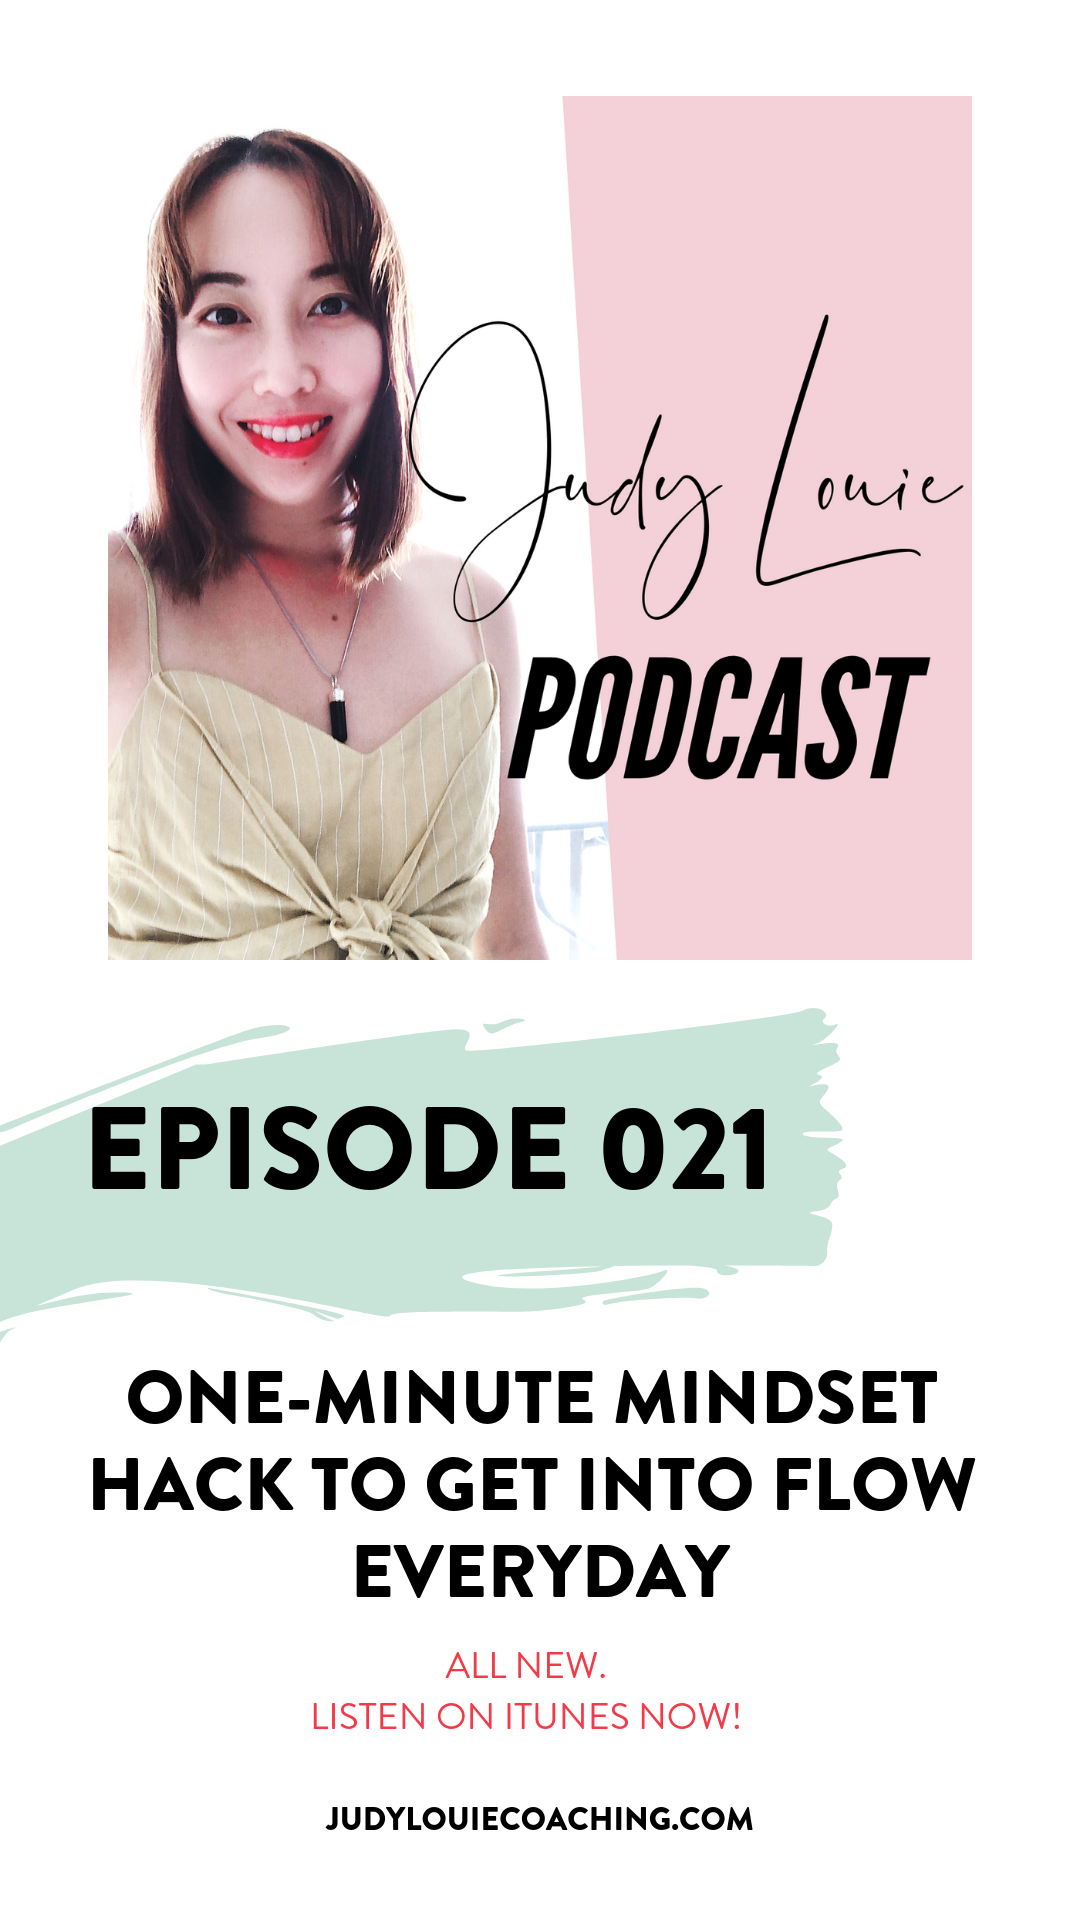 judy louie podcast - mindset hack - ep021.png